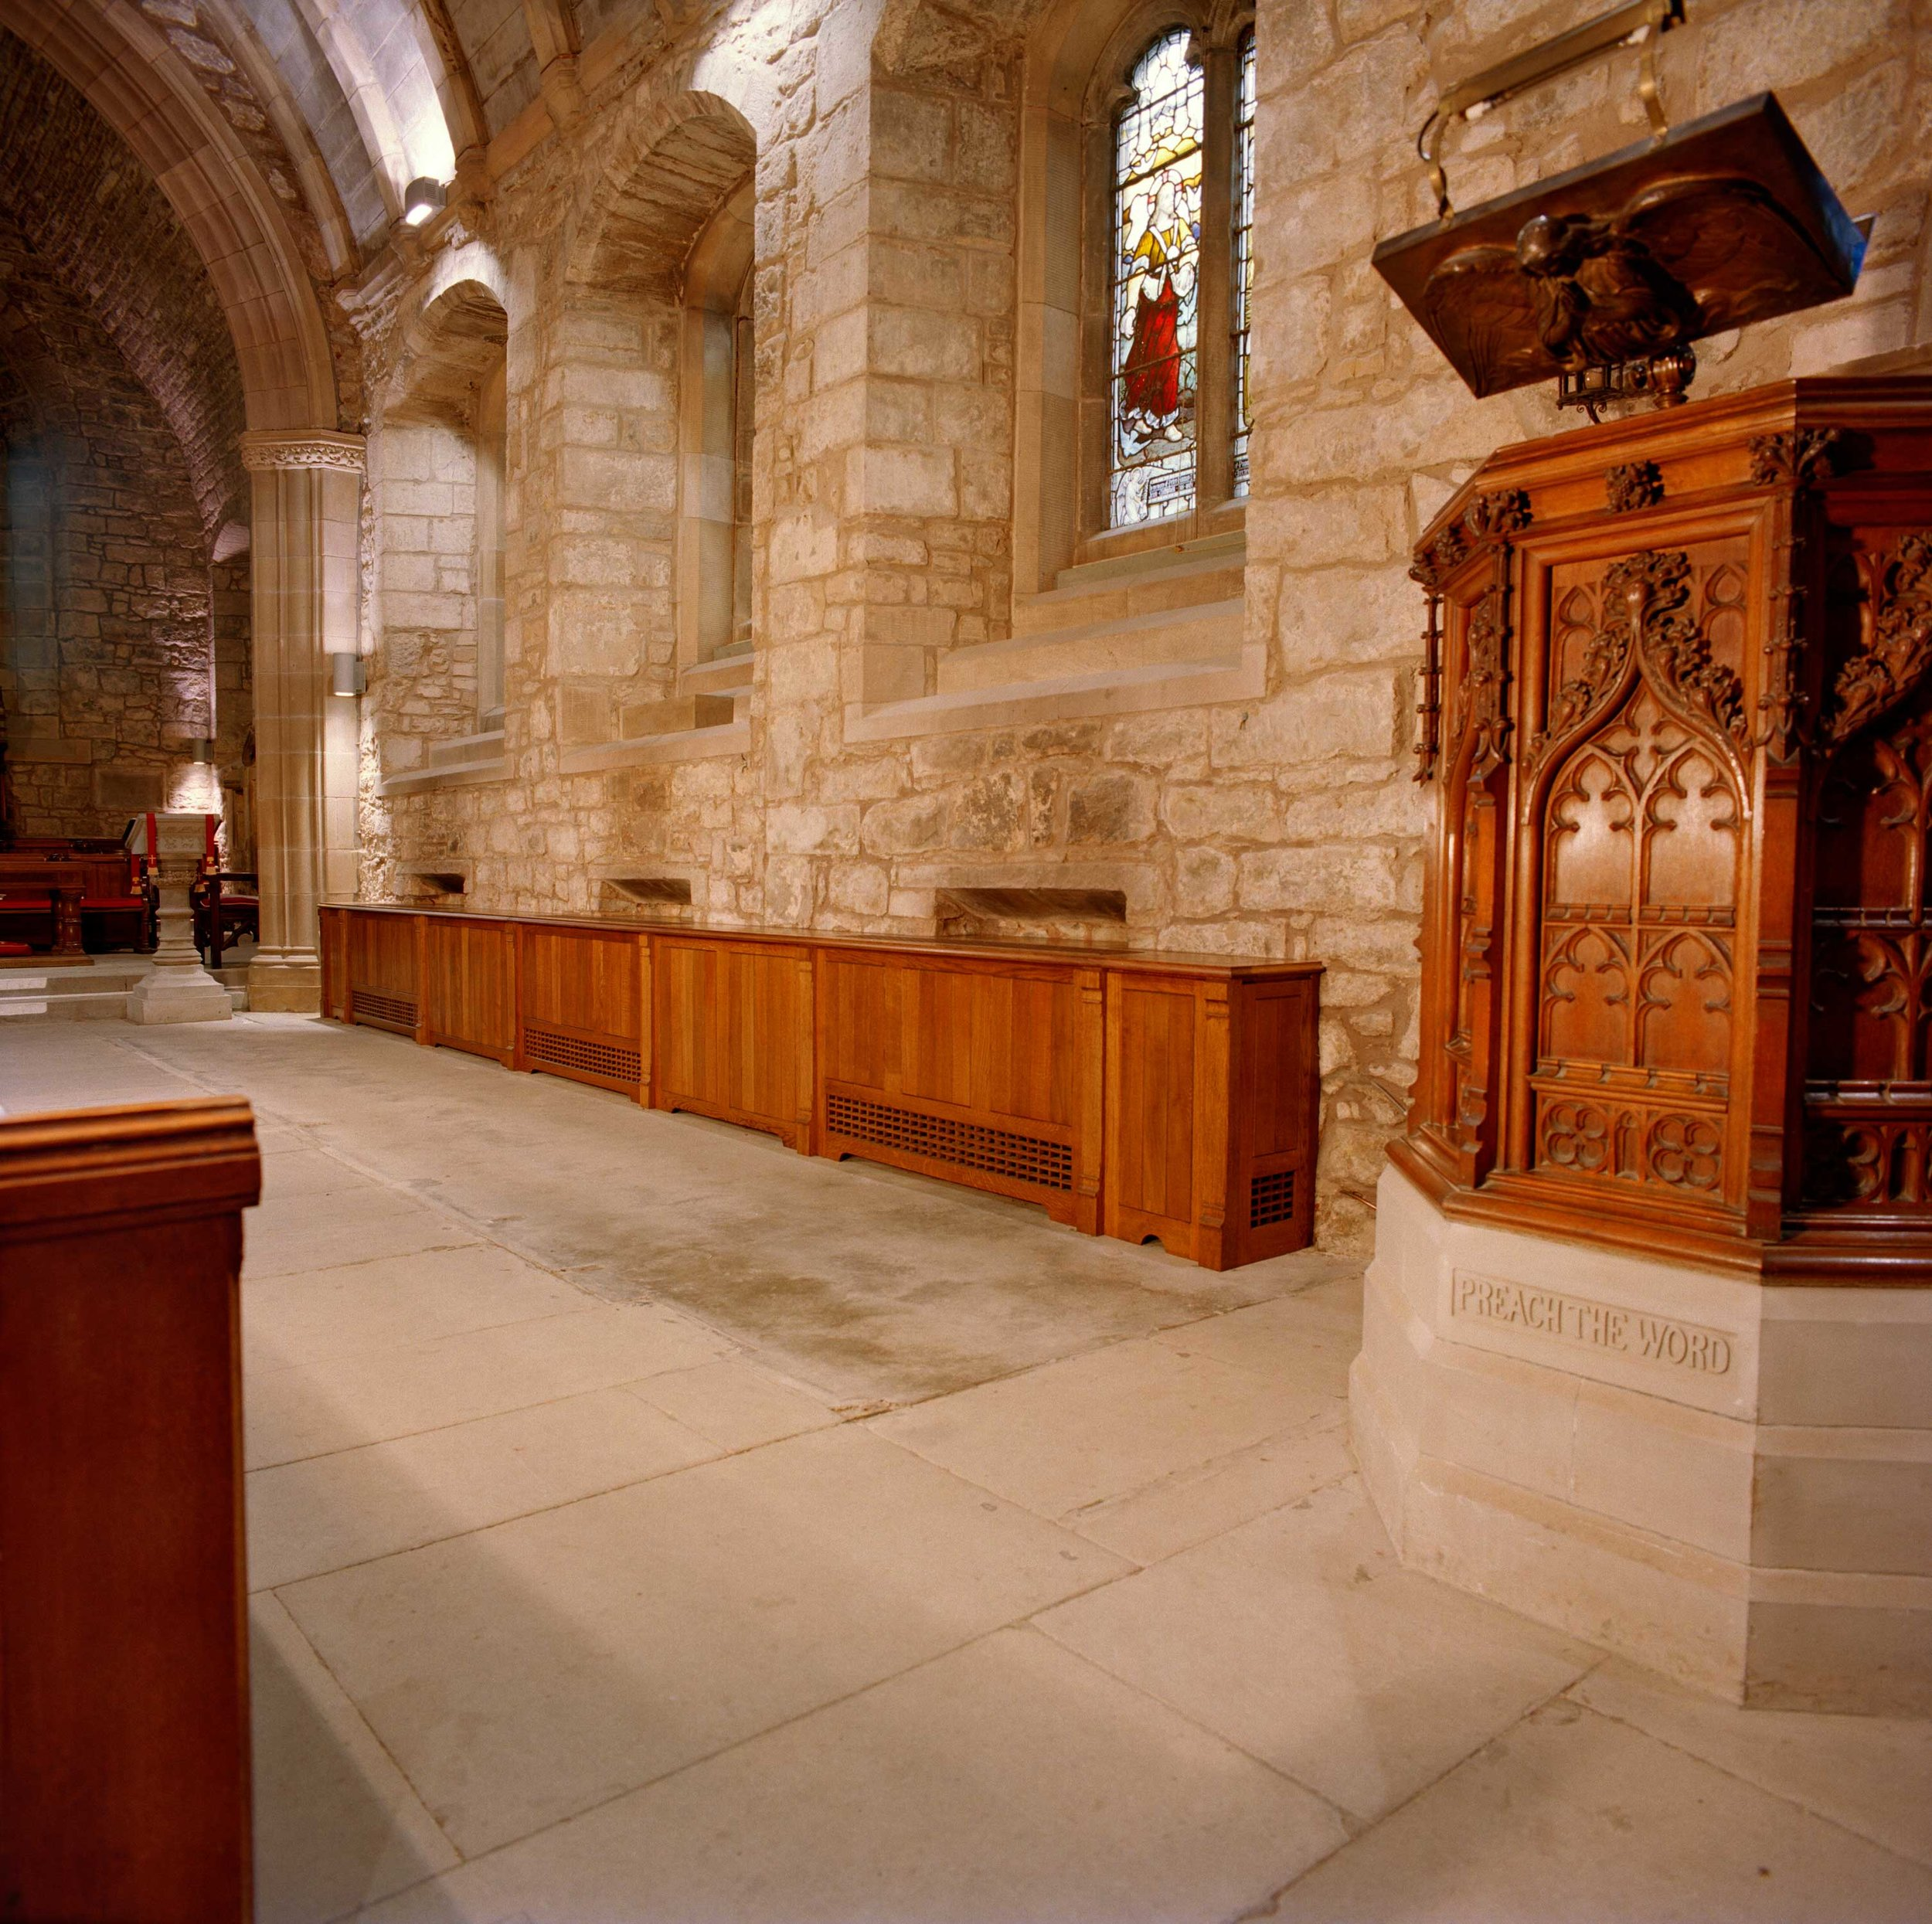 Cabinets in Corstorphine Parish Church, Edinburgh.